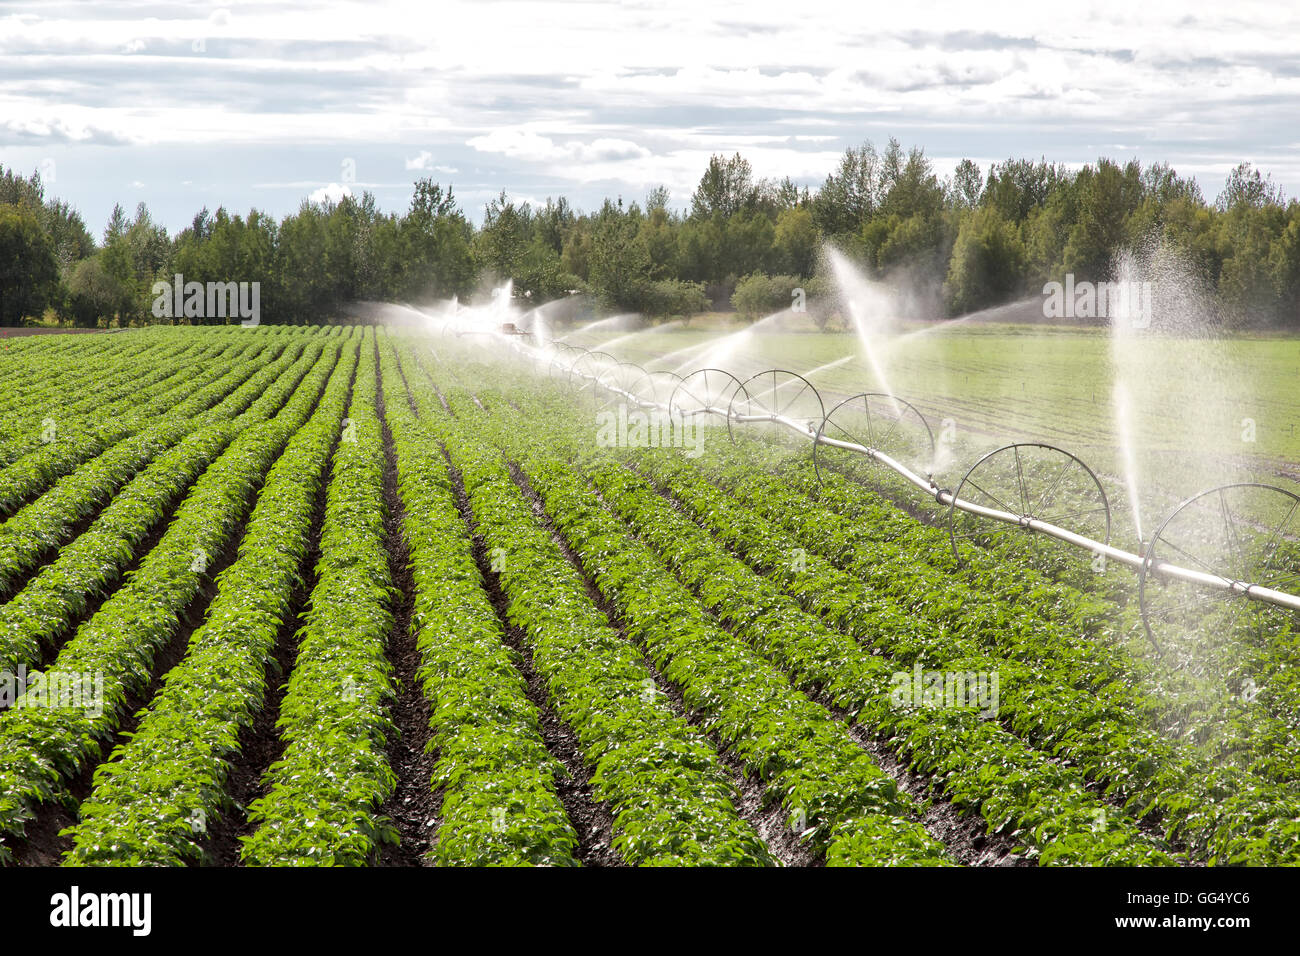 wheel line irrigation system operating in potato field stock photo royalty free image. Black Bedroom Furniture Sets. Home Design Ideas